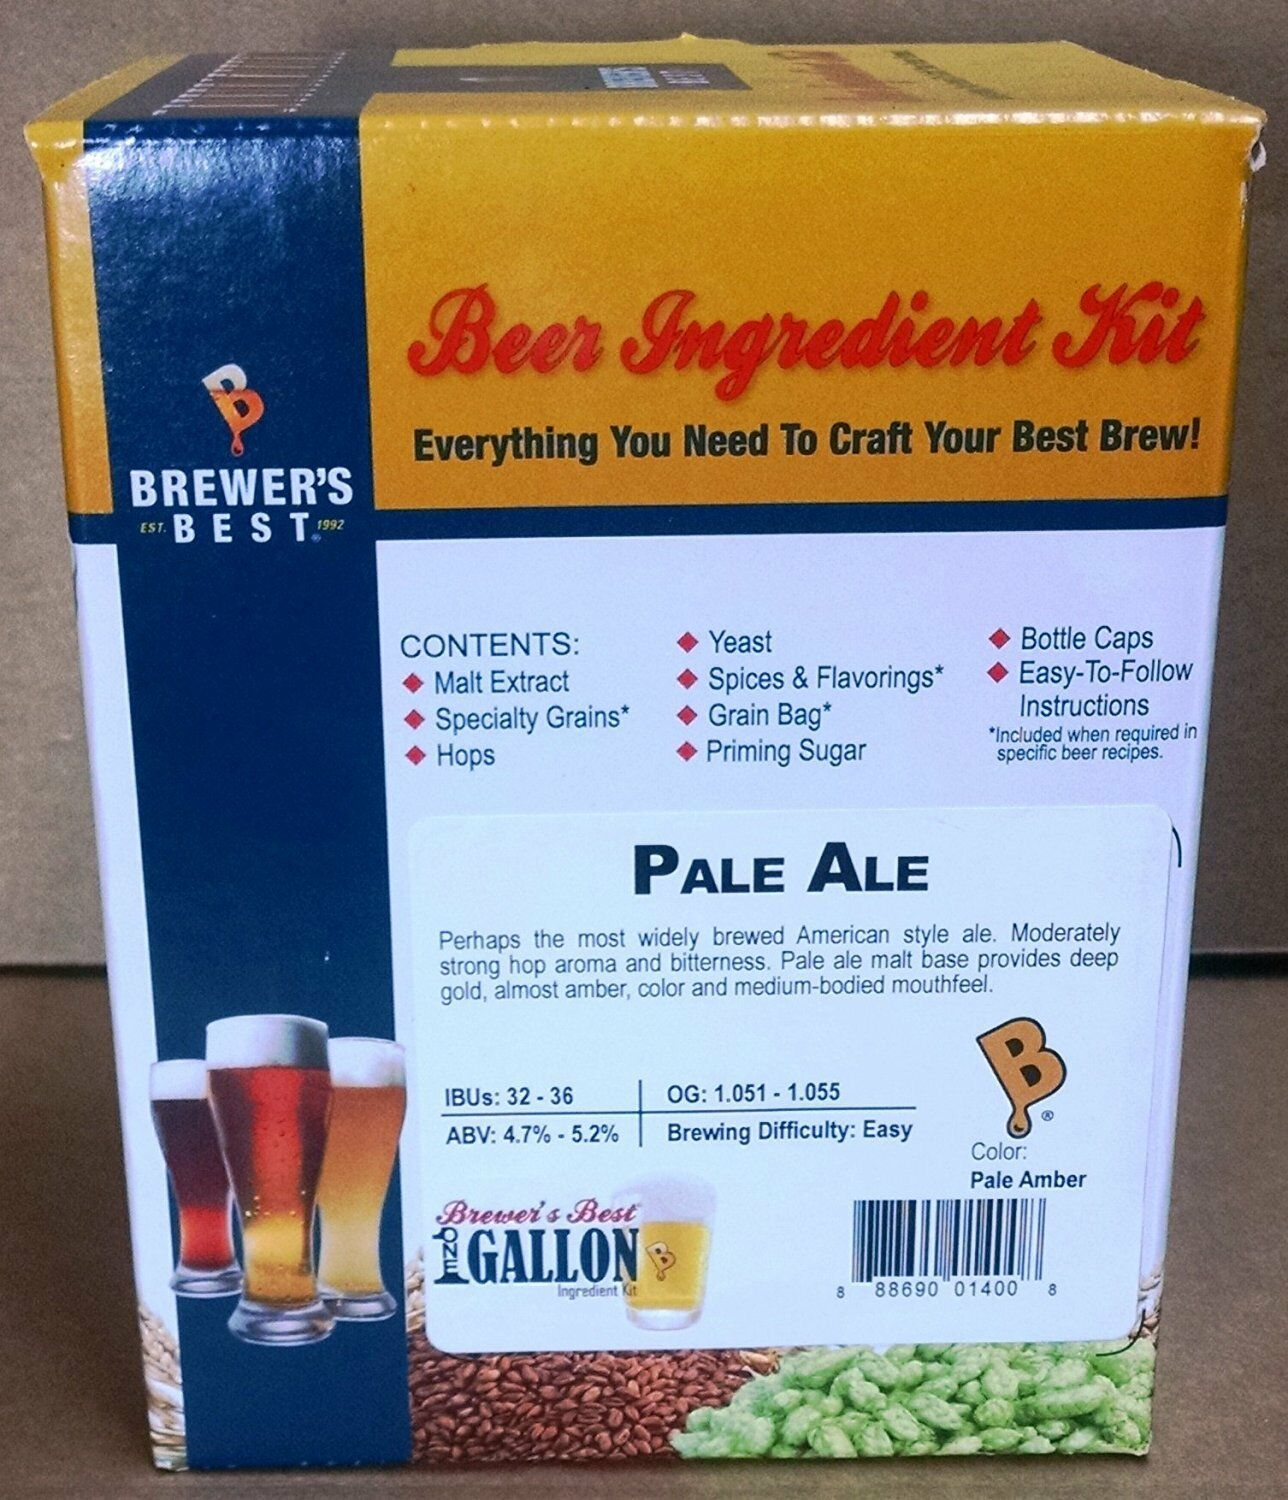 Brewer's Best One Gallon Home Brew Beer Ingredient Kit (Pale Ale) 2